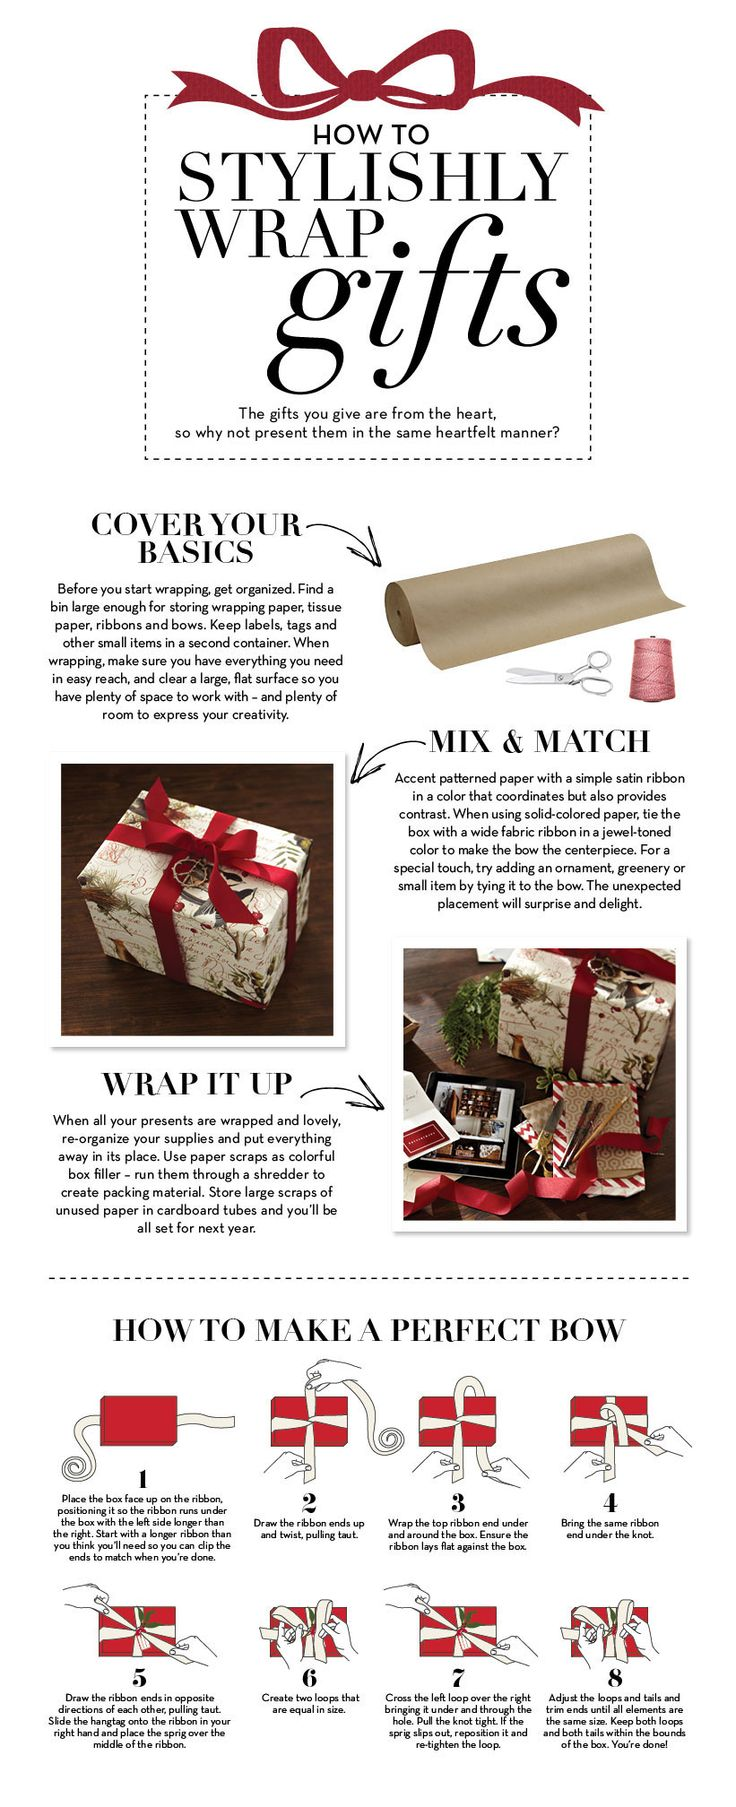 How to Stylishly Wrap Gifts